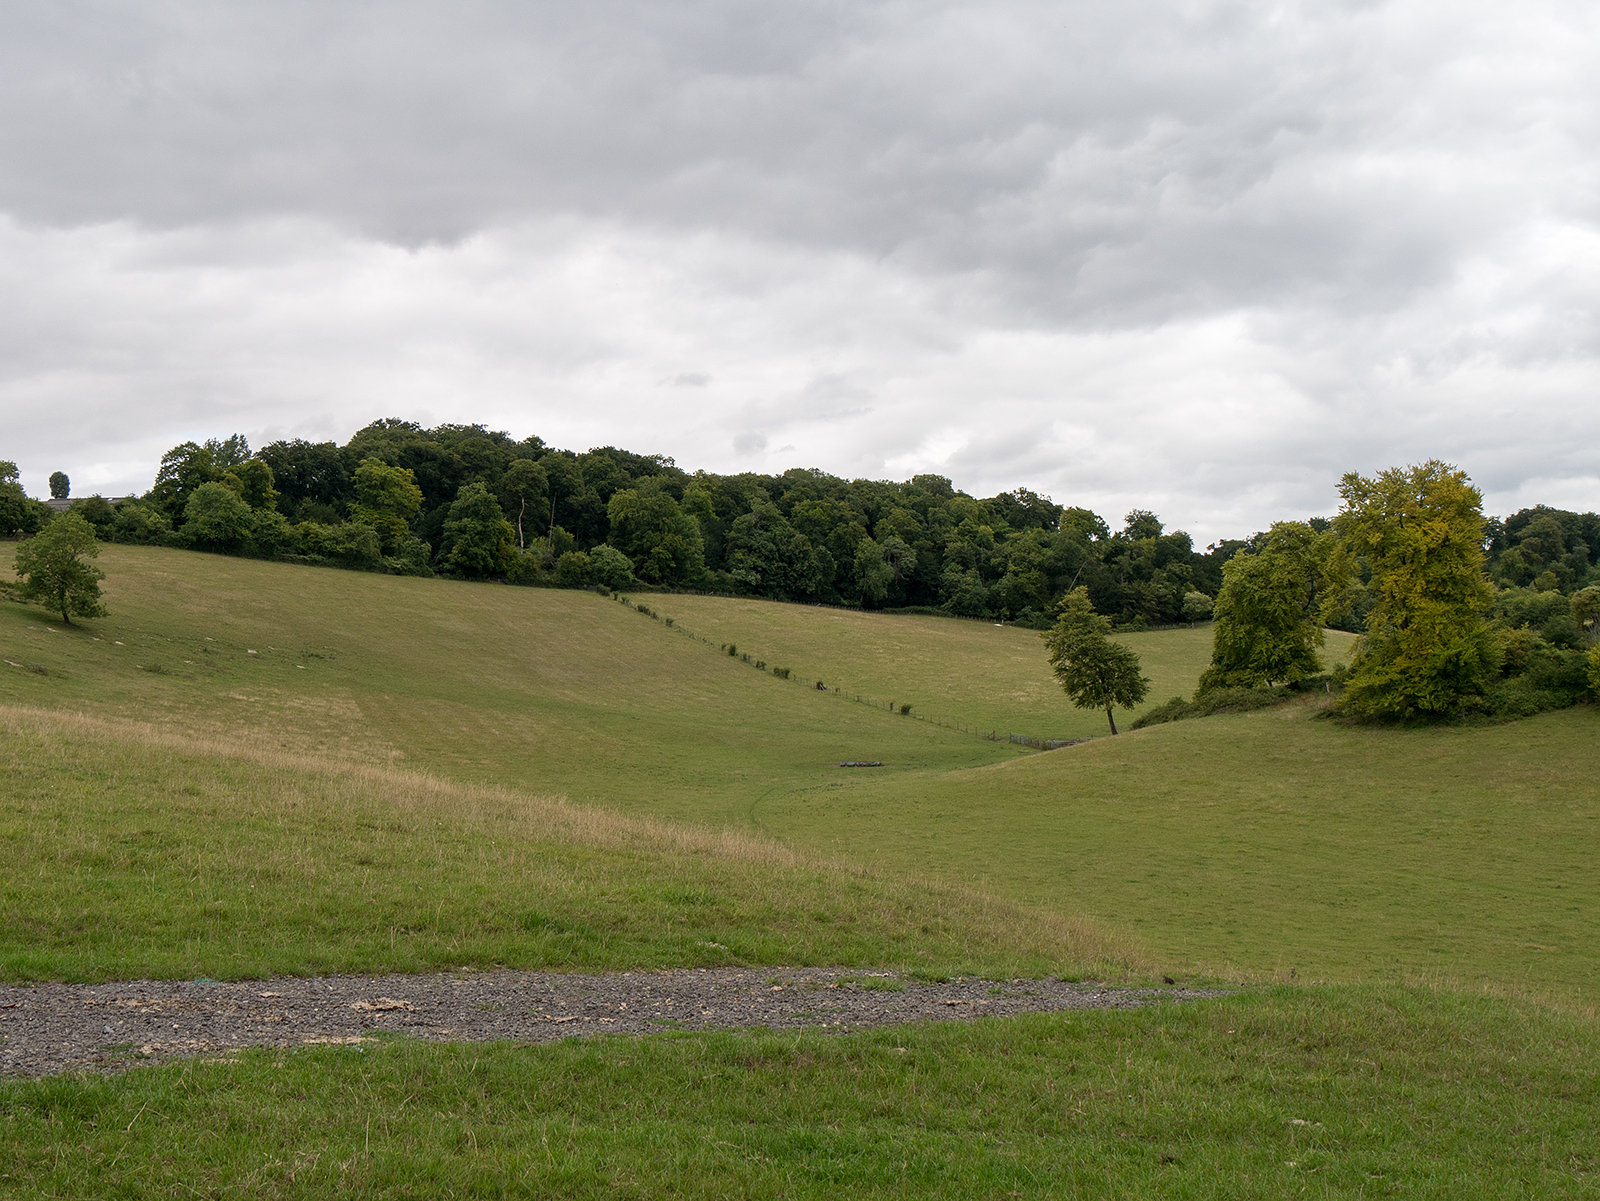 One the path near Hartslock Wood looking east